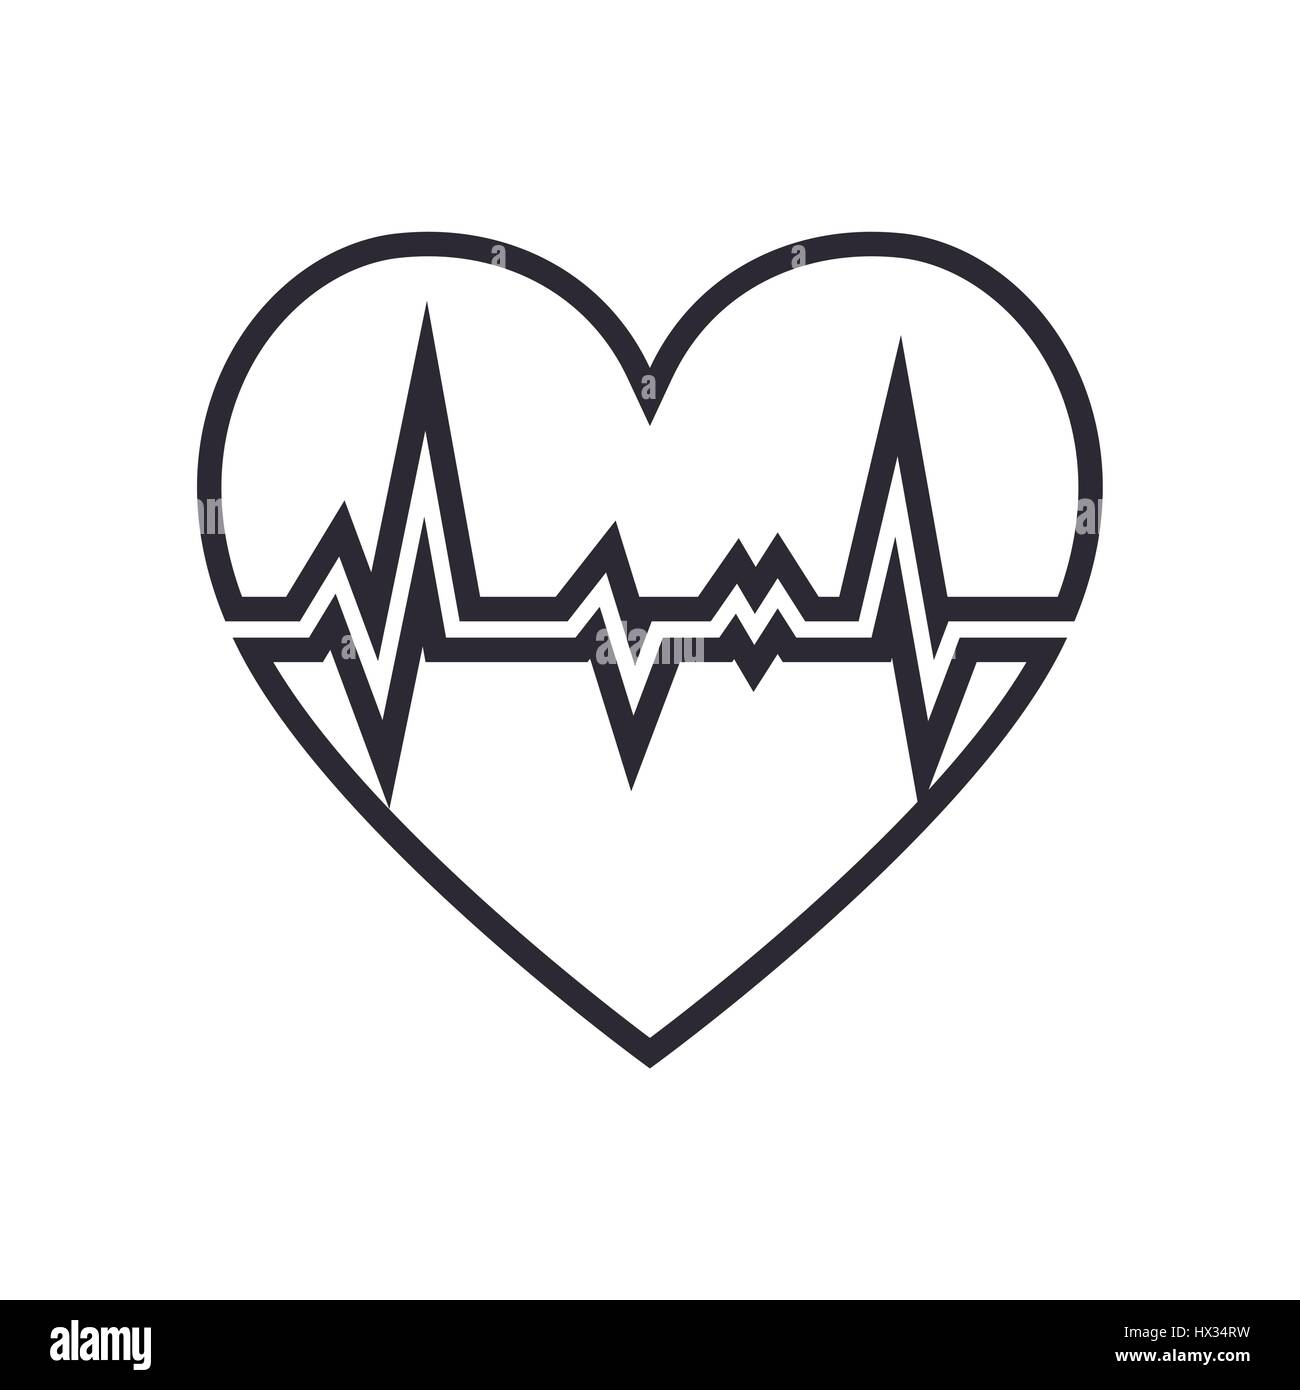 heart cardiology isolated icon - Stock Image